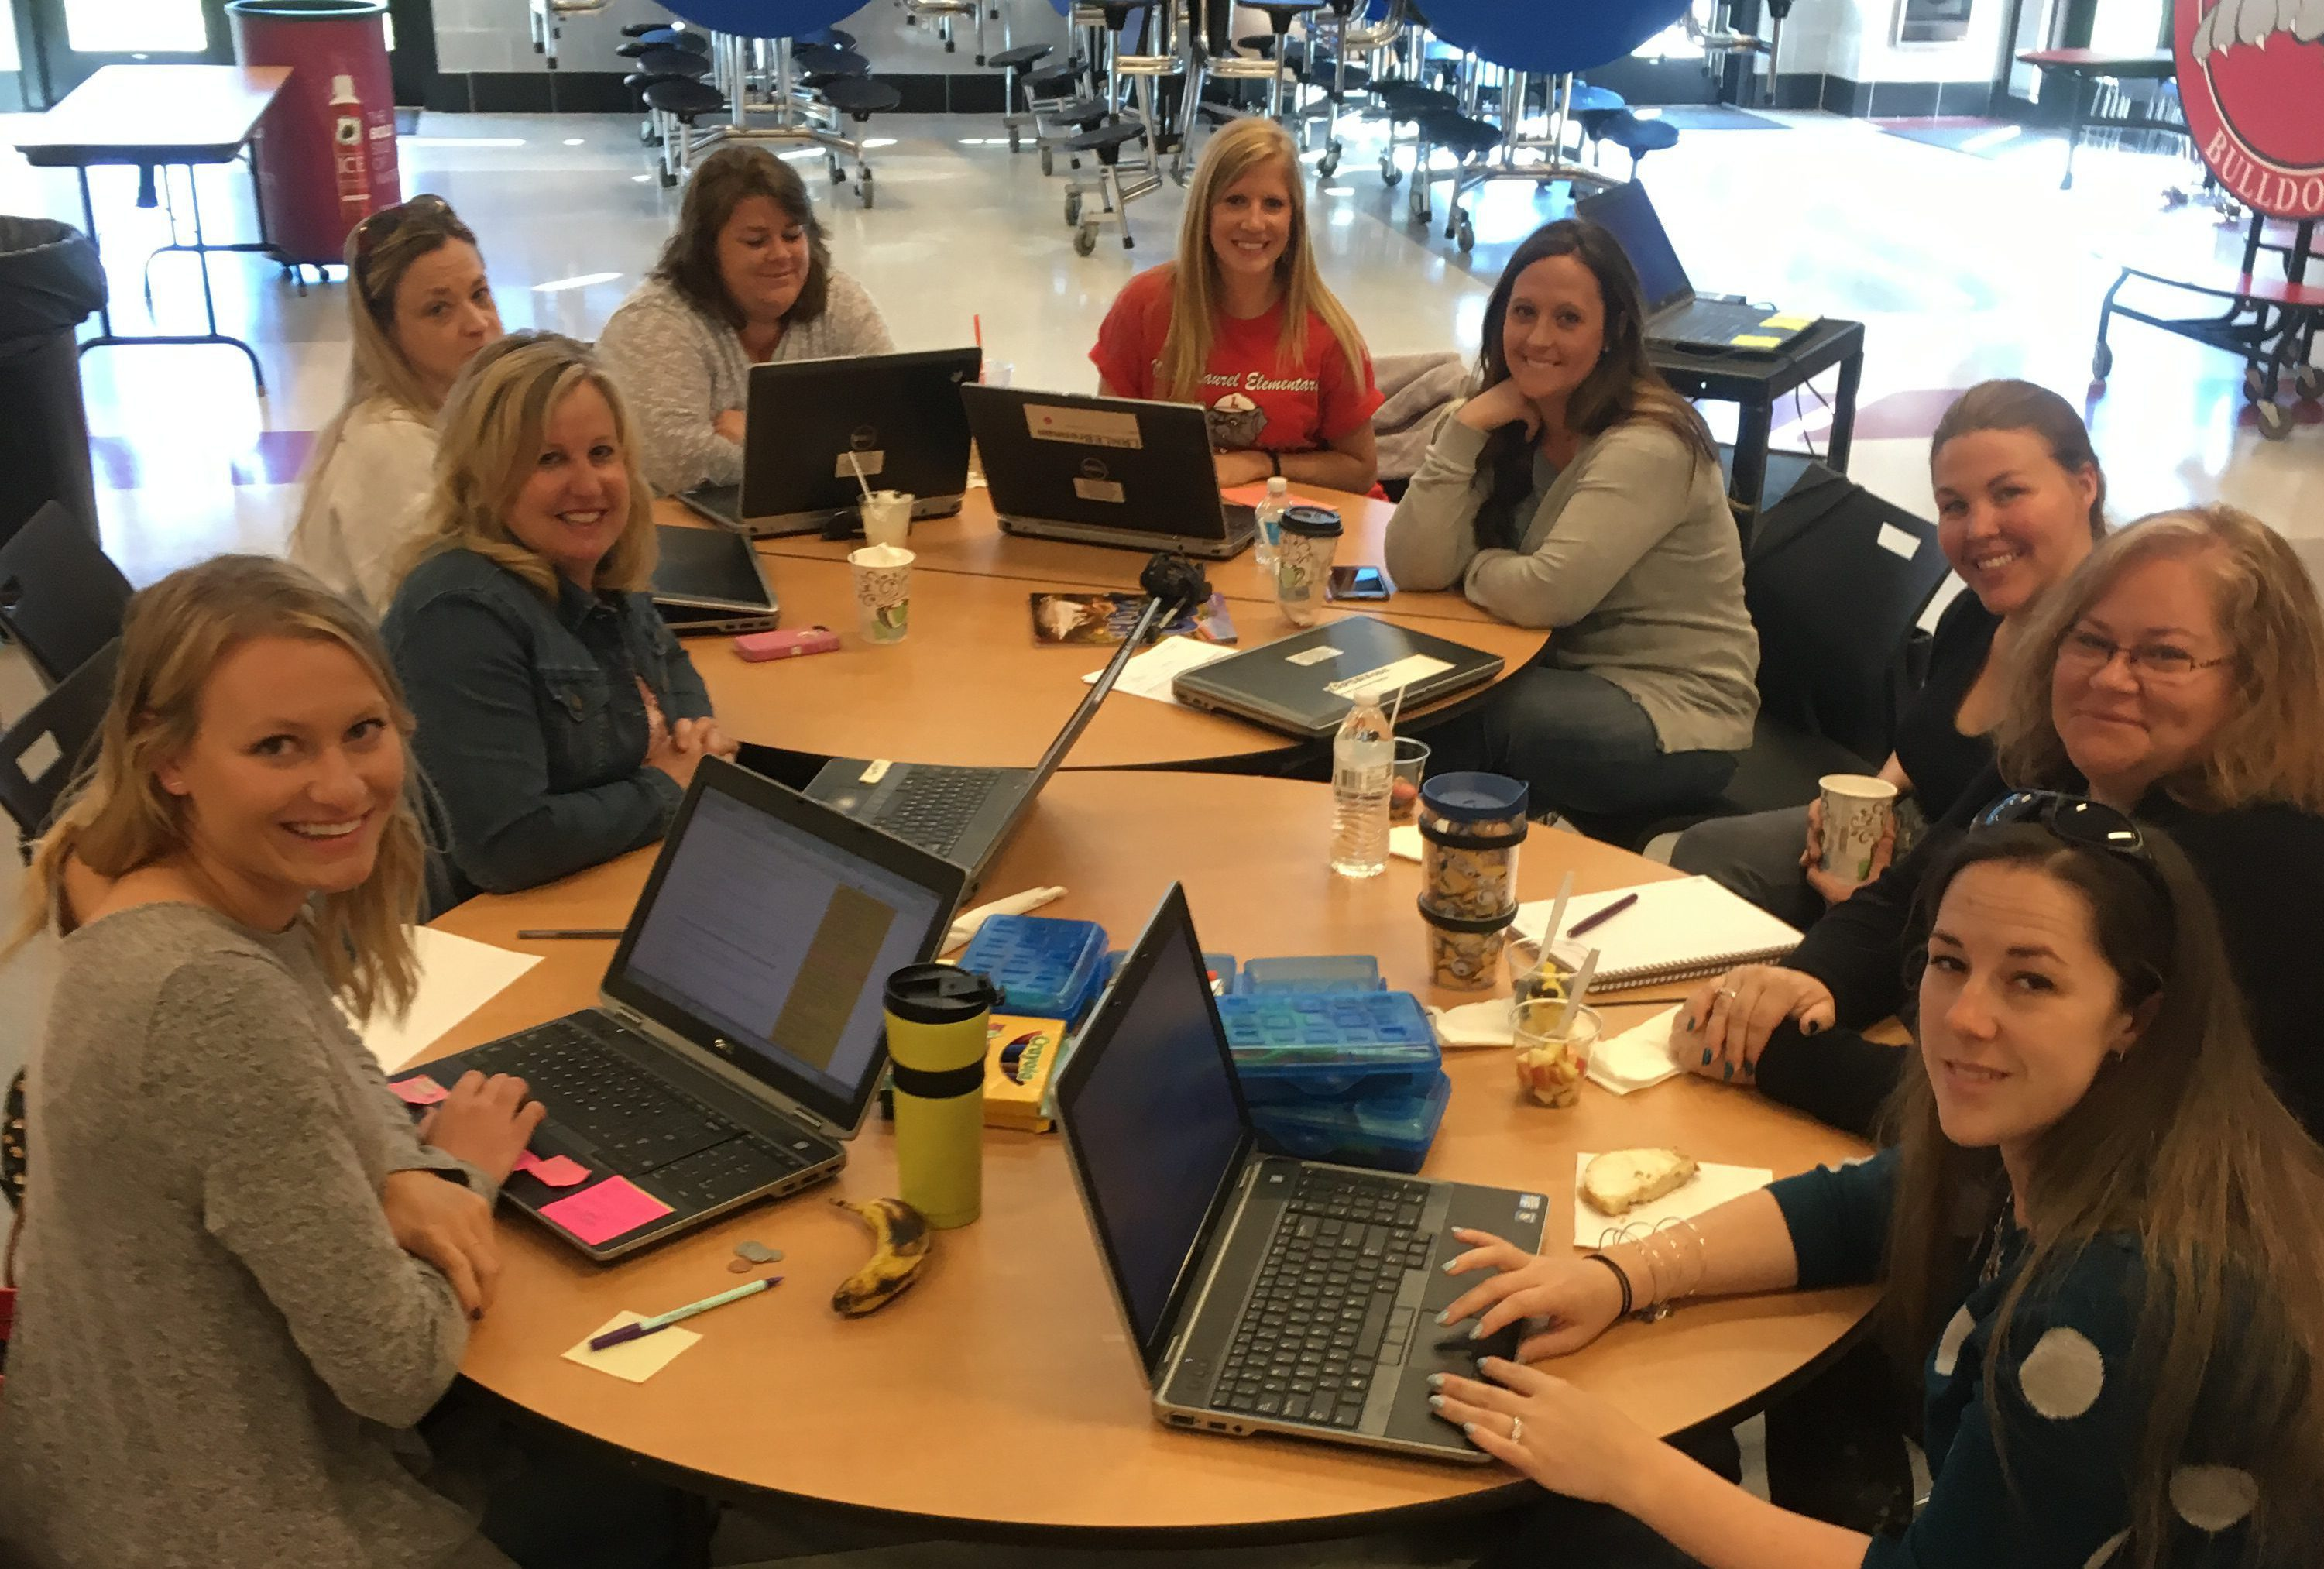 Teachers working and planning together